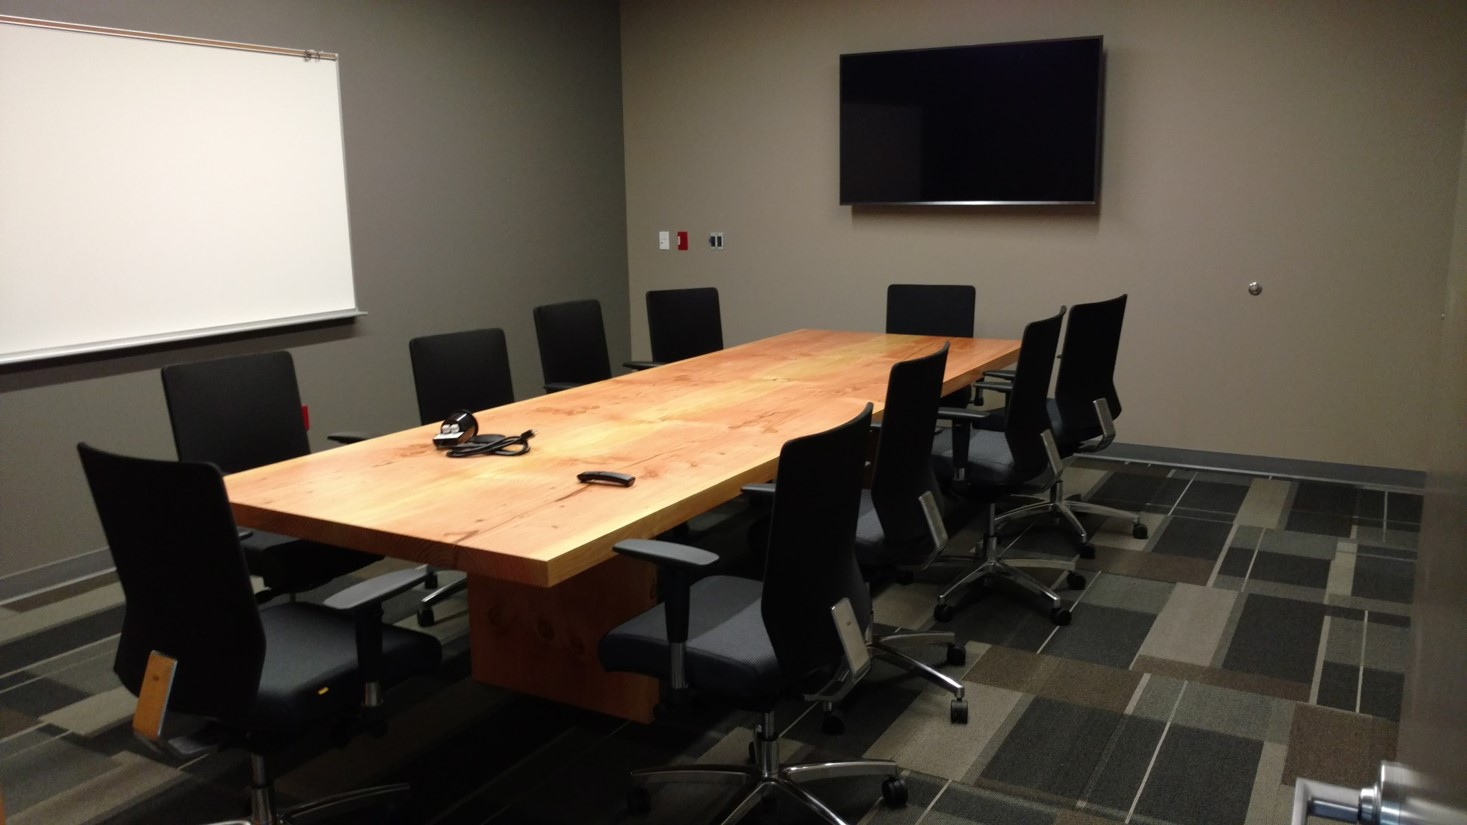 Conference Room and Reclaimed Wood.jpg